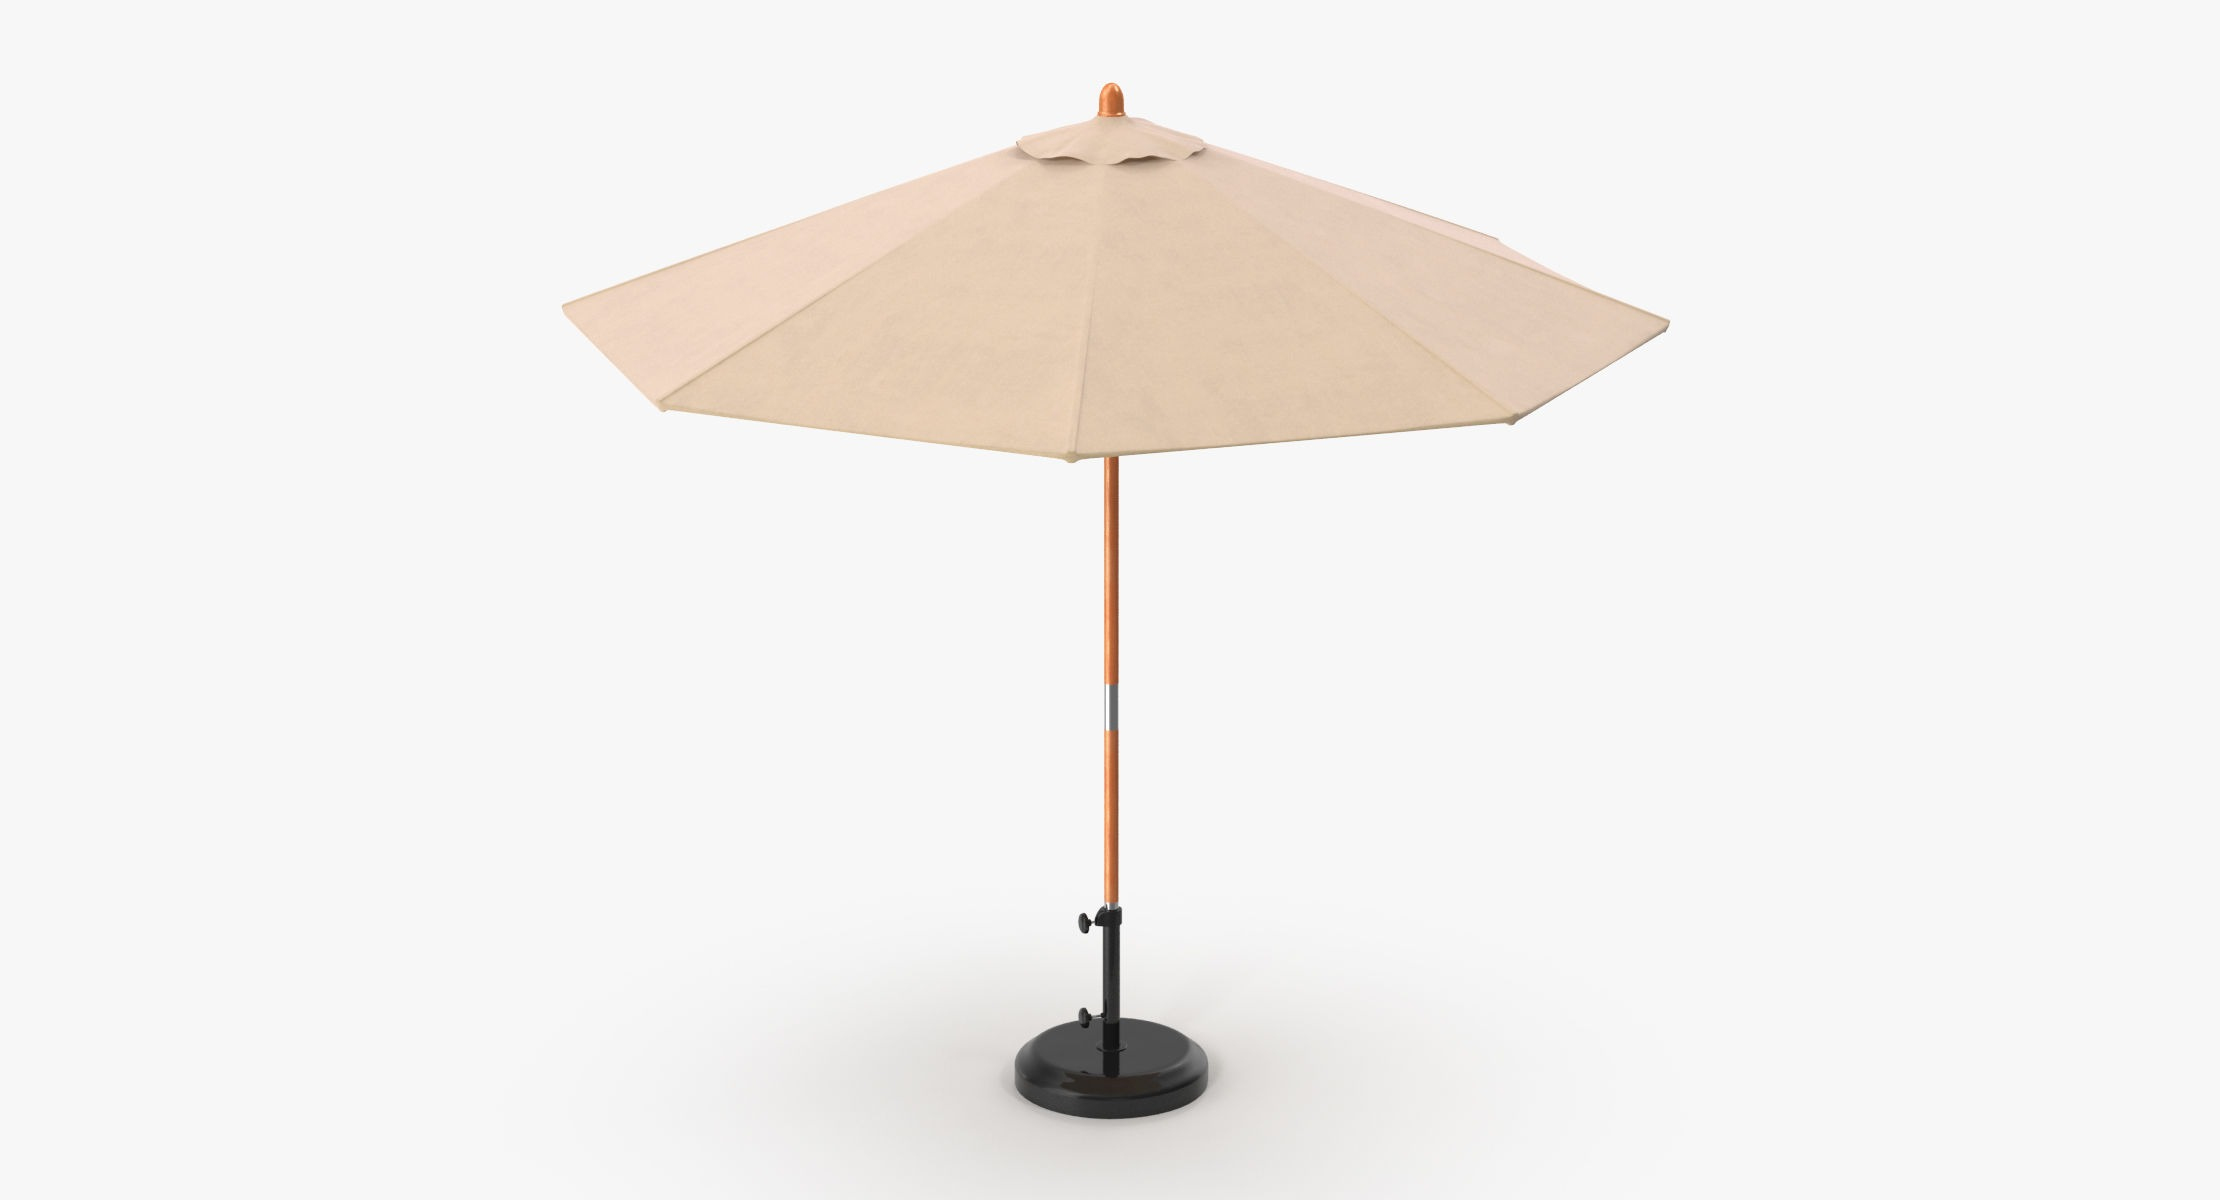 Patio Umbrella Opened - reel 1